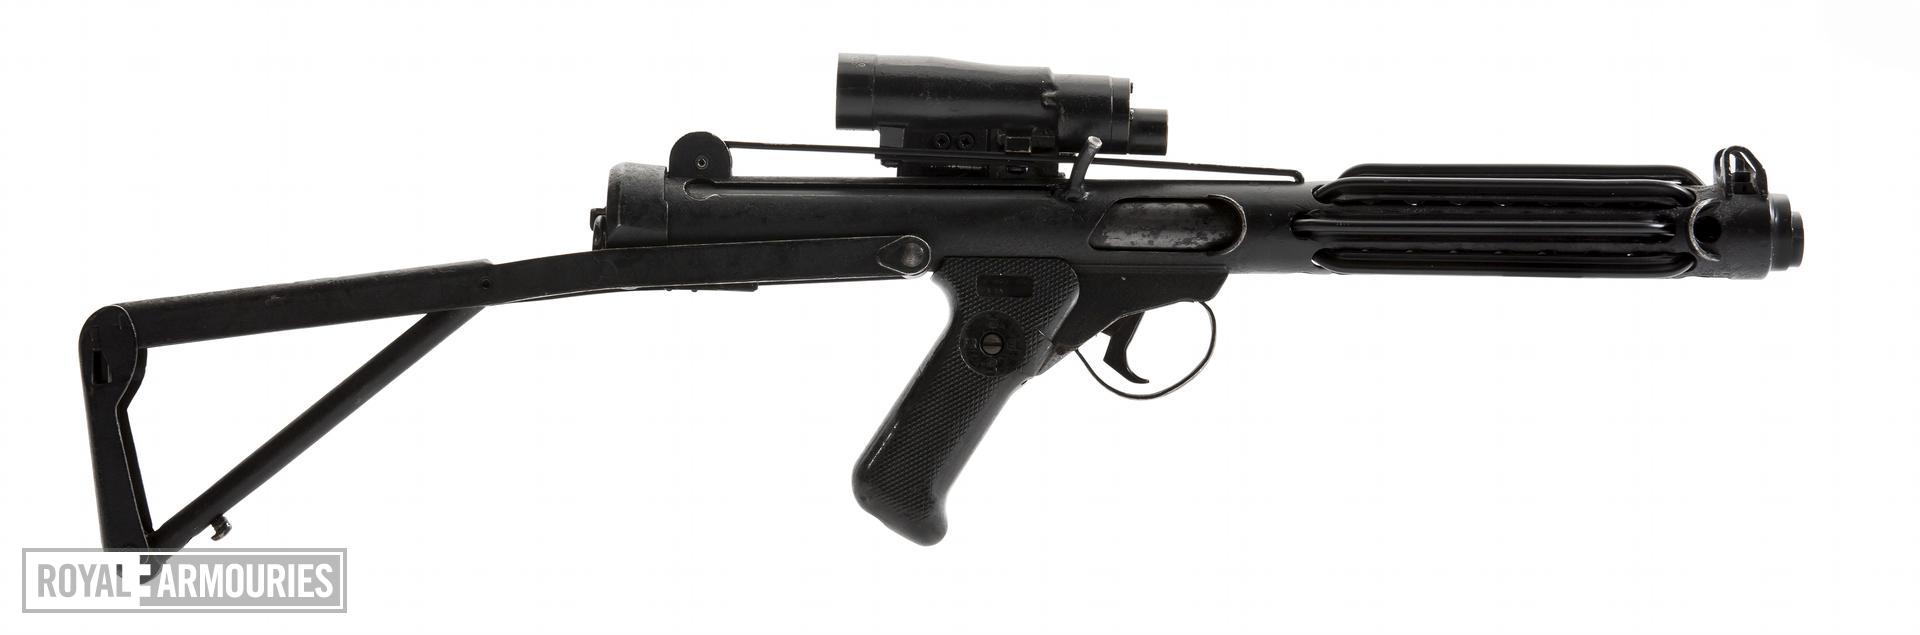 E11 blaster with stock extended